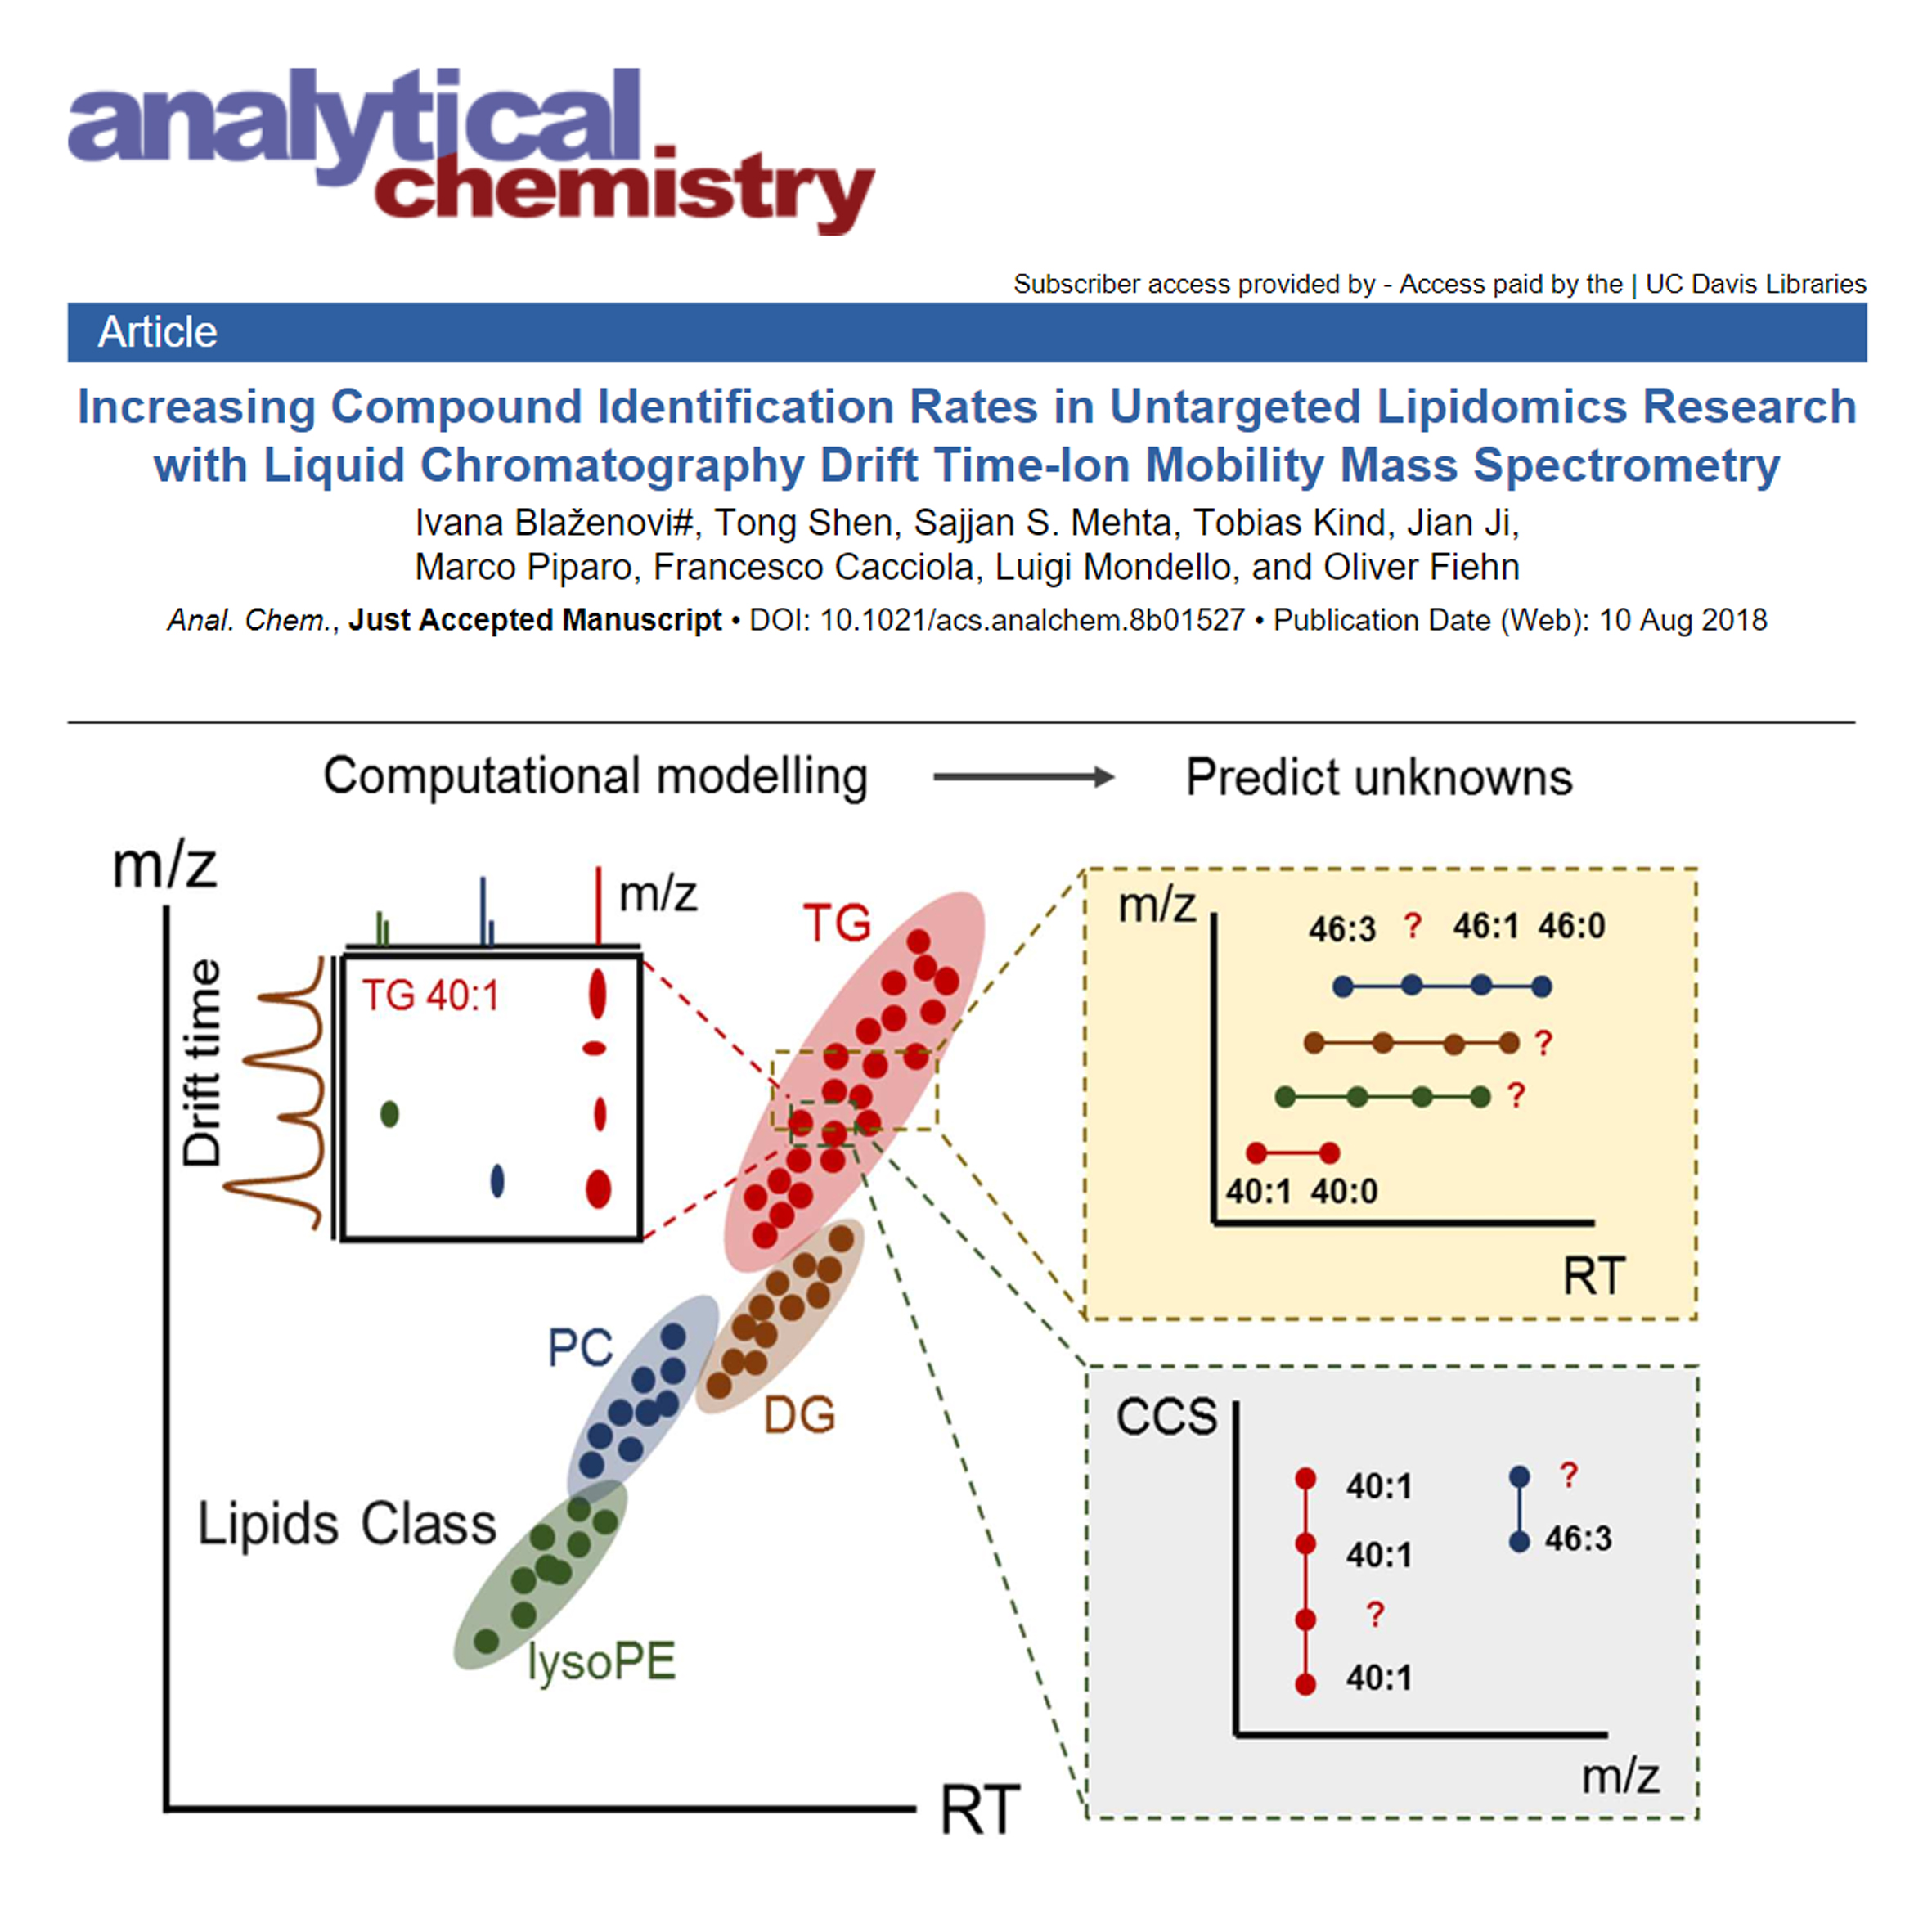 Increasing Compound Identification Rates in Untargeted Lipidomics Research with Liquid Chromatography Drift Time-Ion Mobility Mass Spectrometry